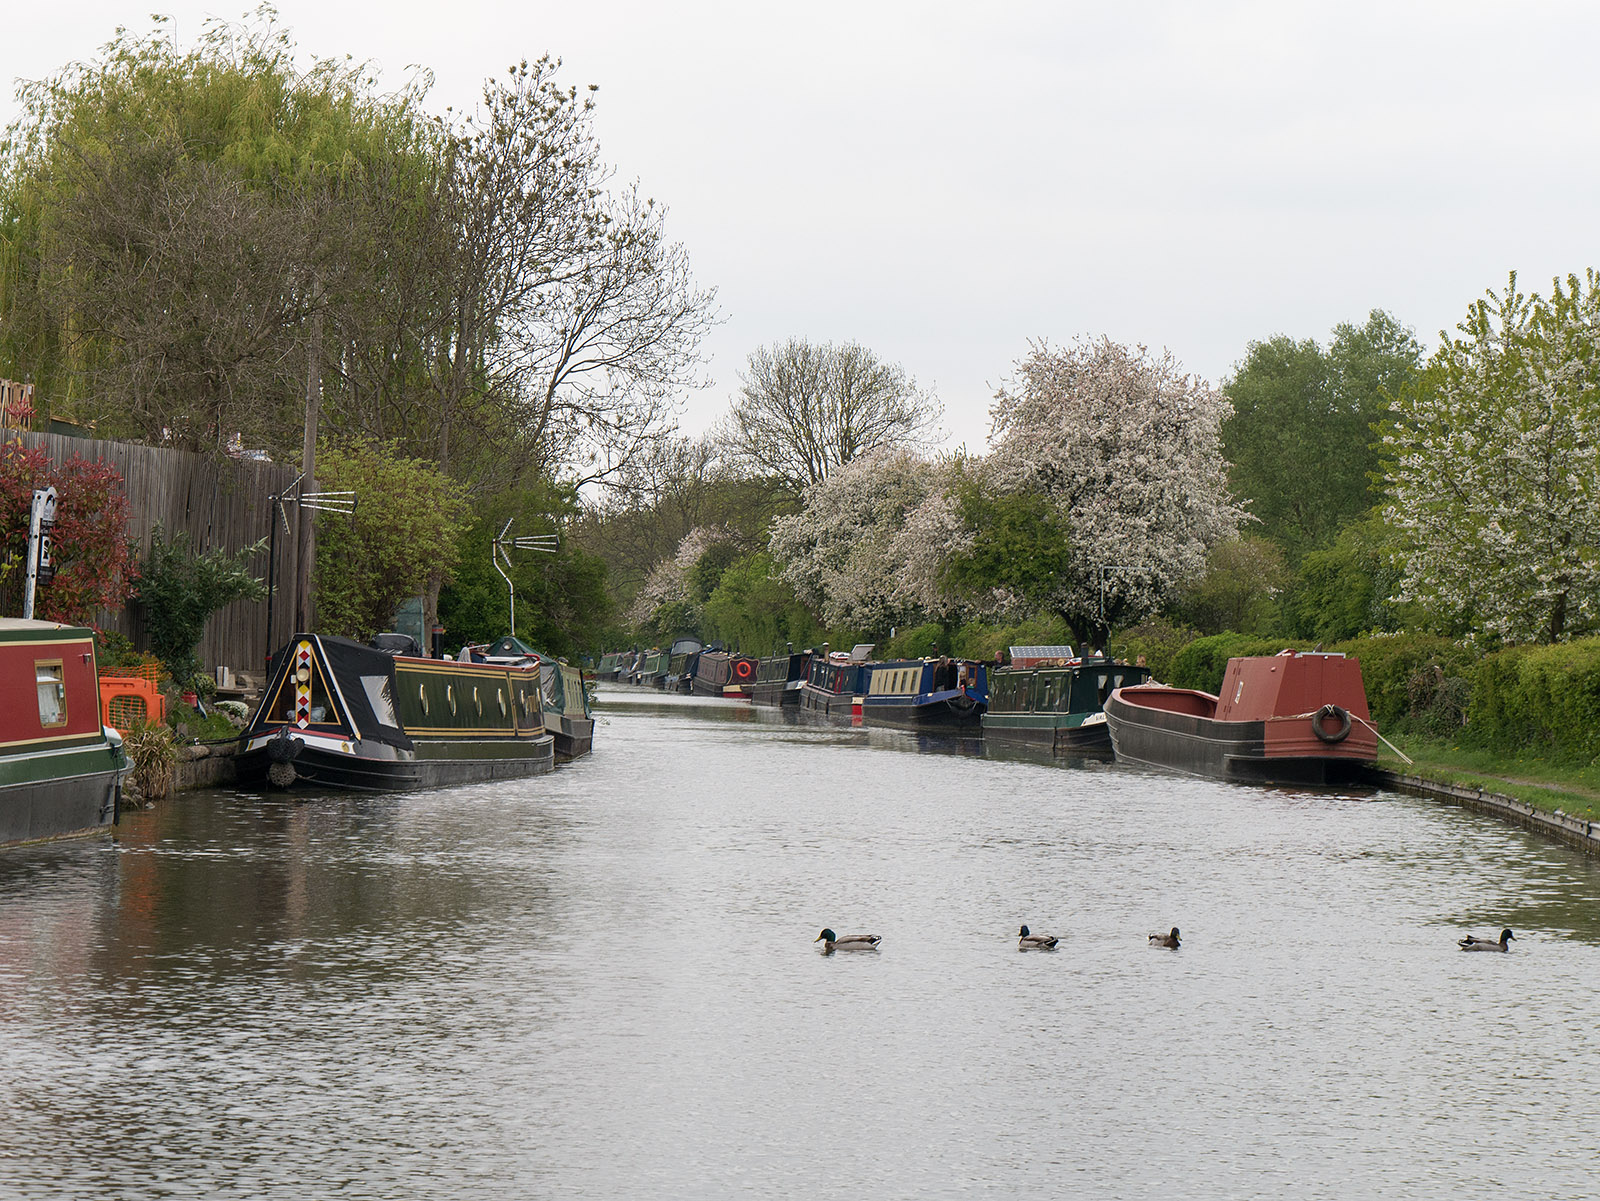 Looking north from Fenny Stratford lock